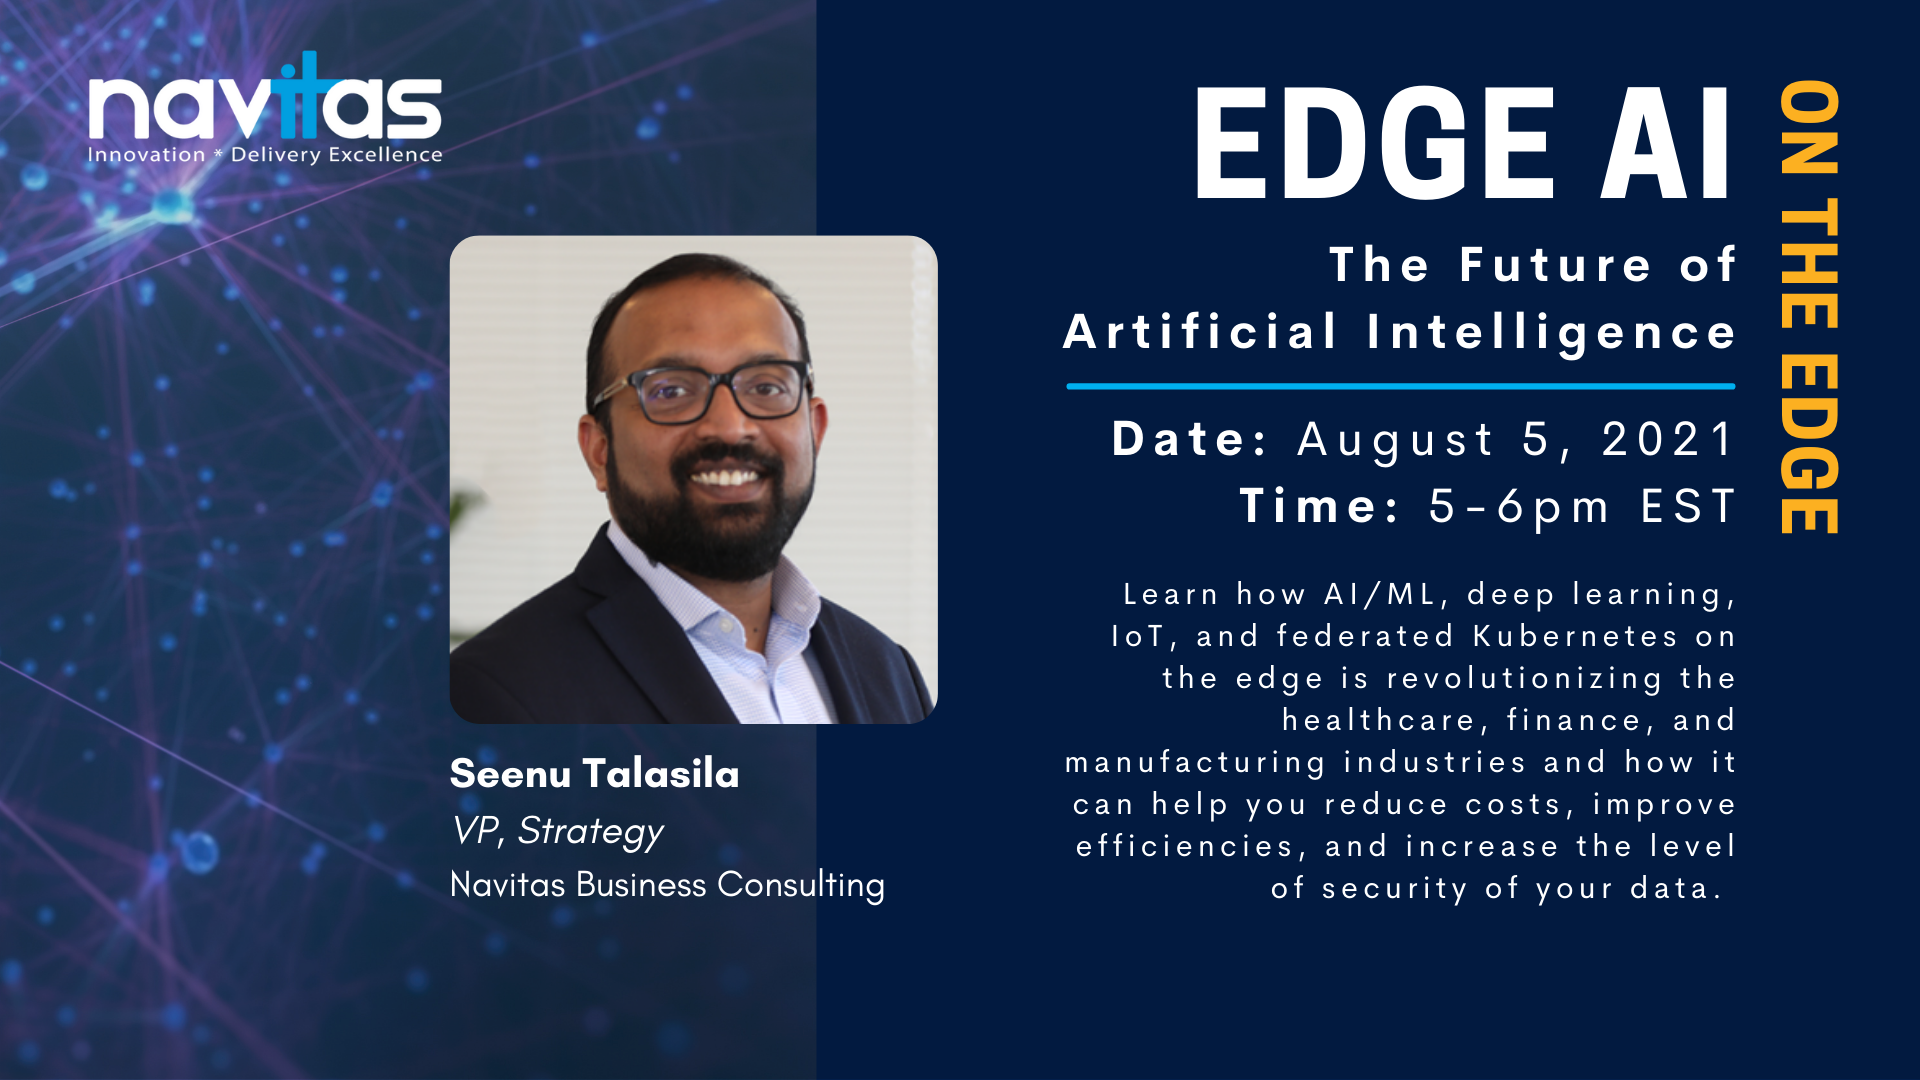 Save the Date! Navitas Presents: Edge AI - The Future of Artificial Intelligence